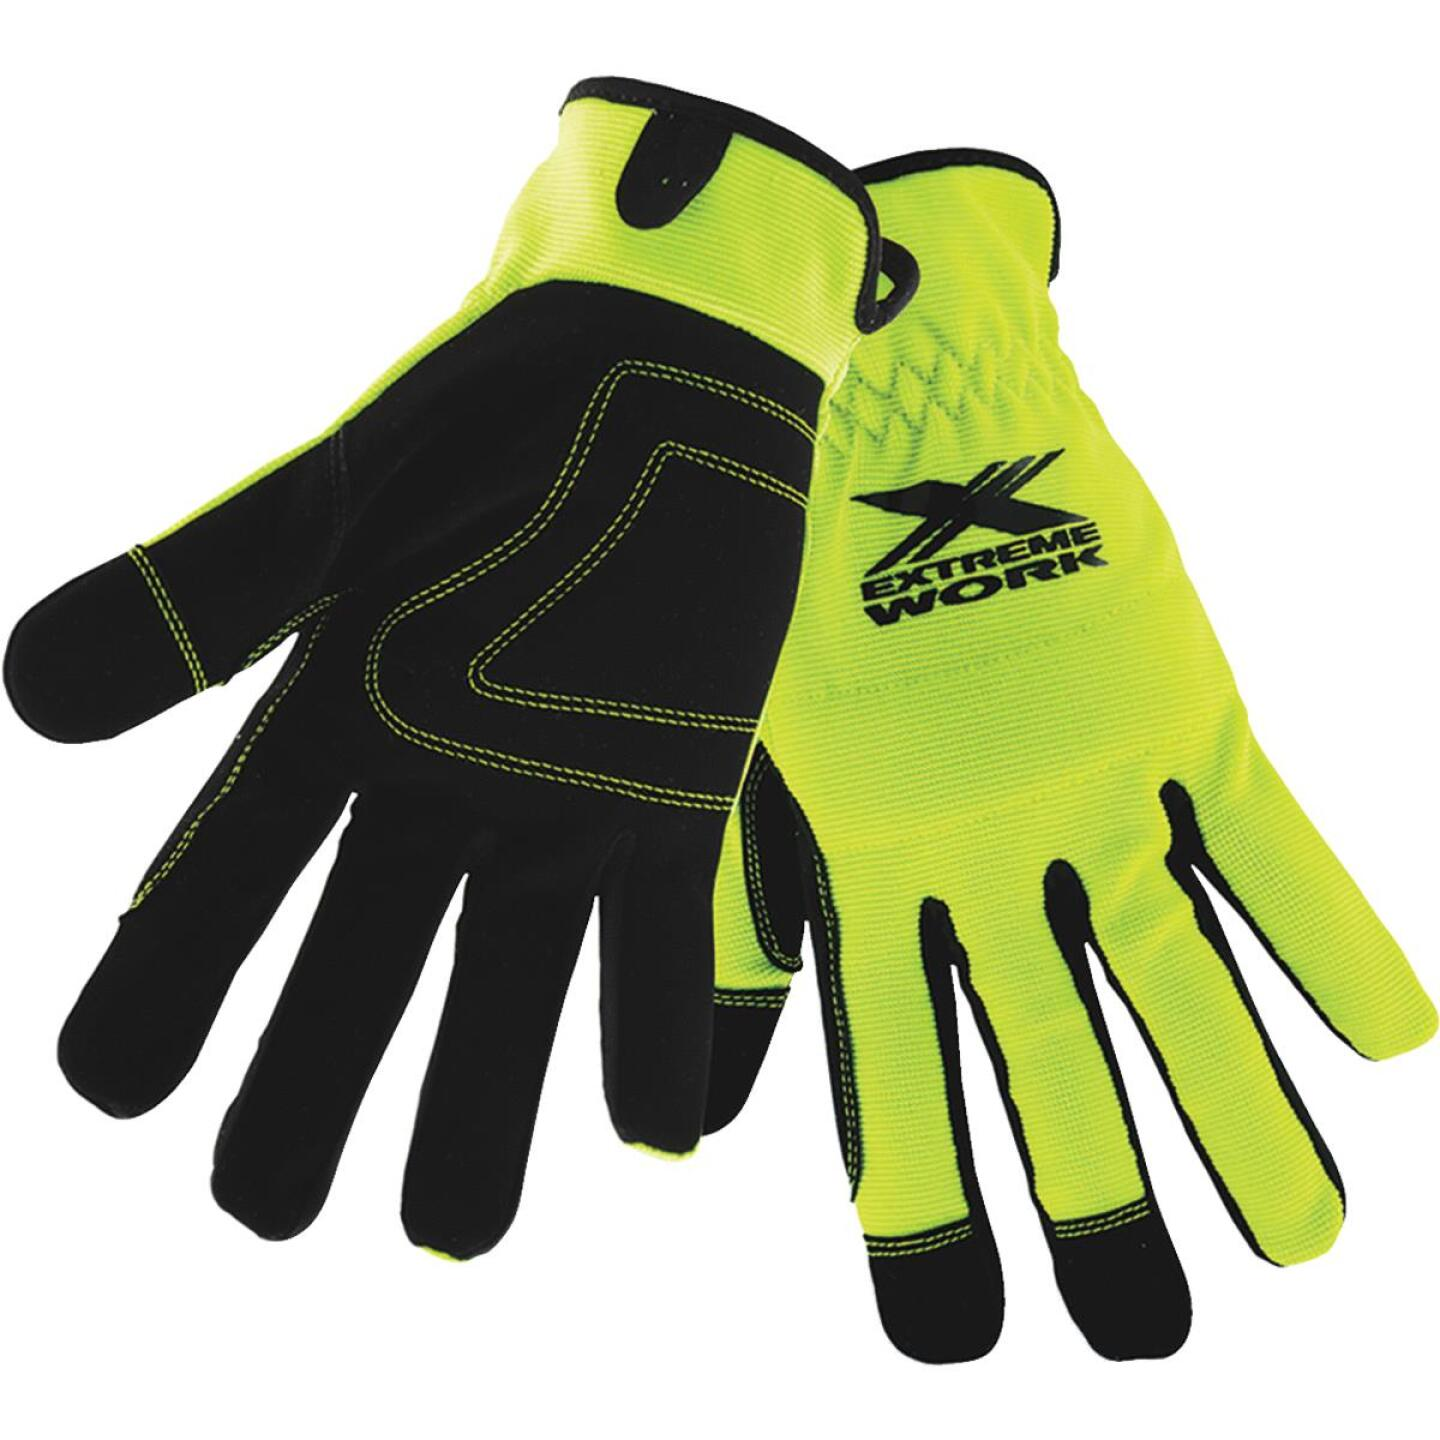 West Chester Protective Gear Extreme Work Men's Large Synthetic Leather High Performance Glove Image 1